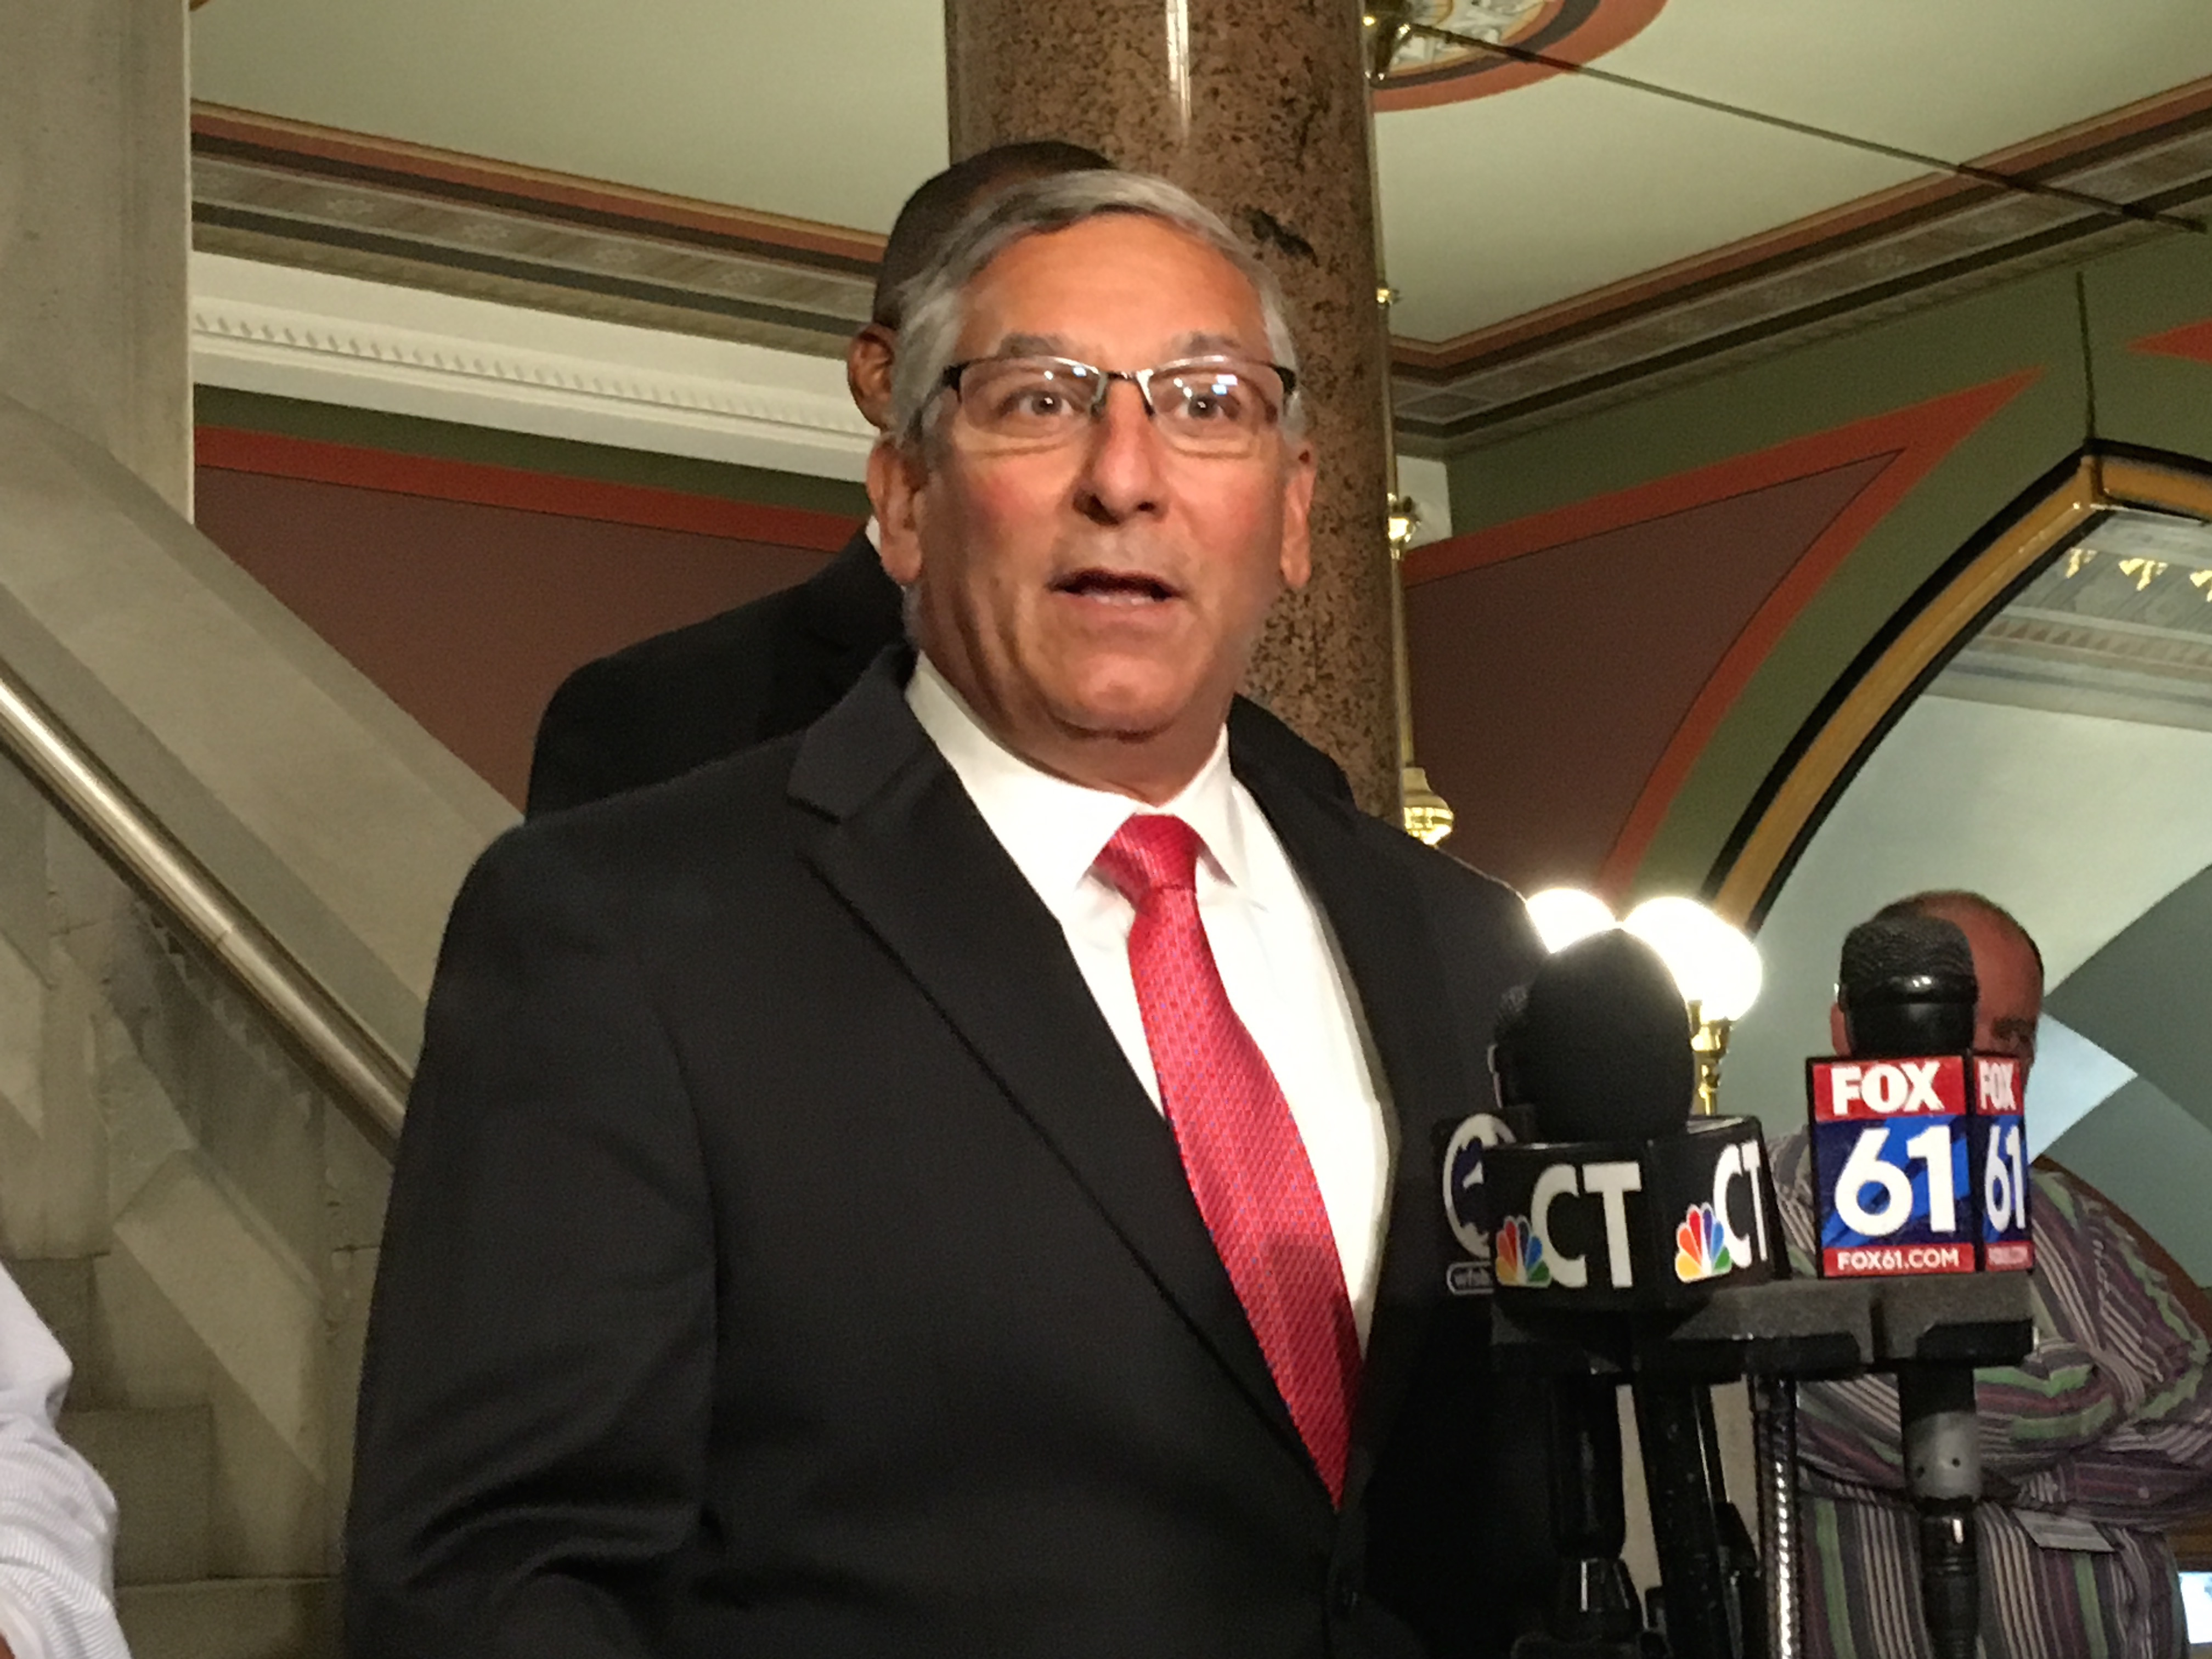 GOP's Fasano calls on Trump to apologize for immigration comments